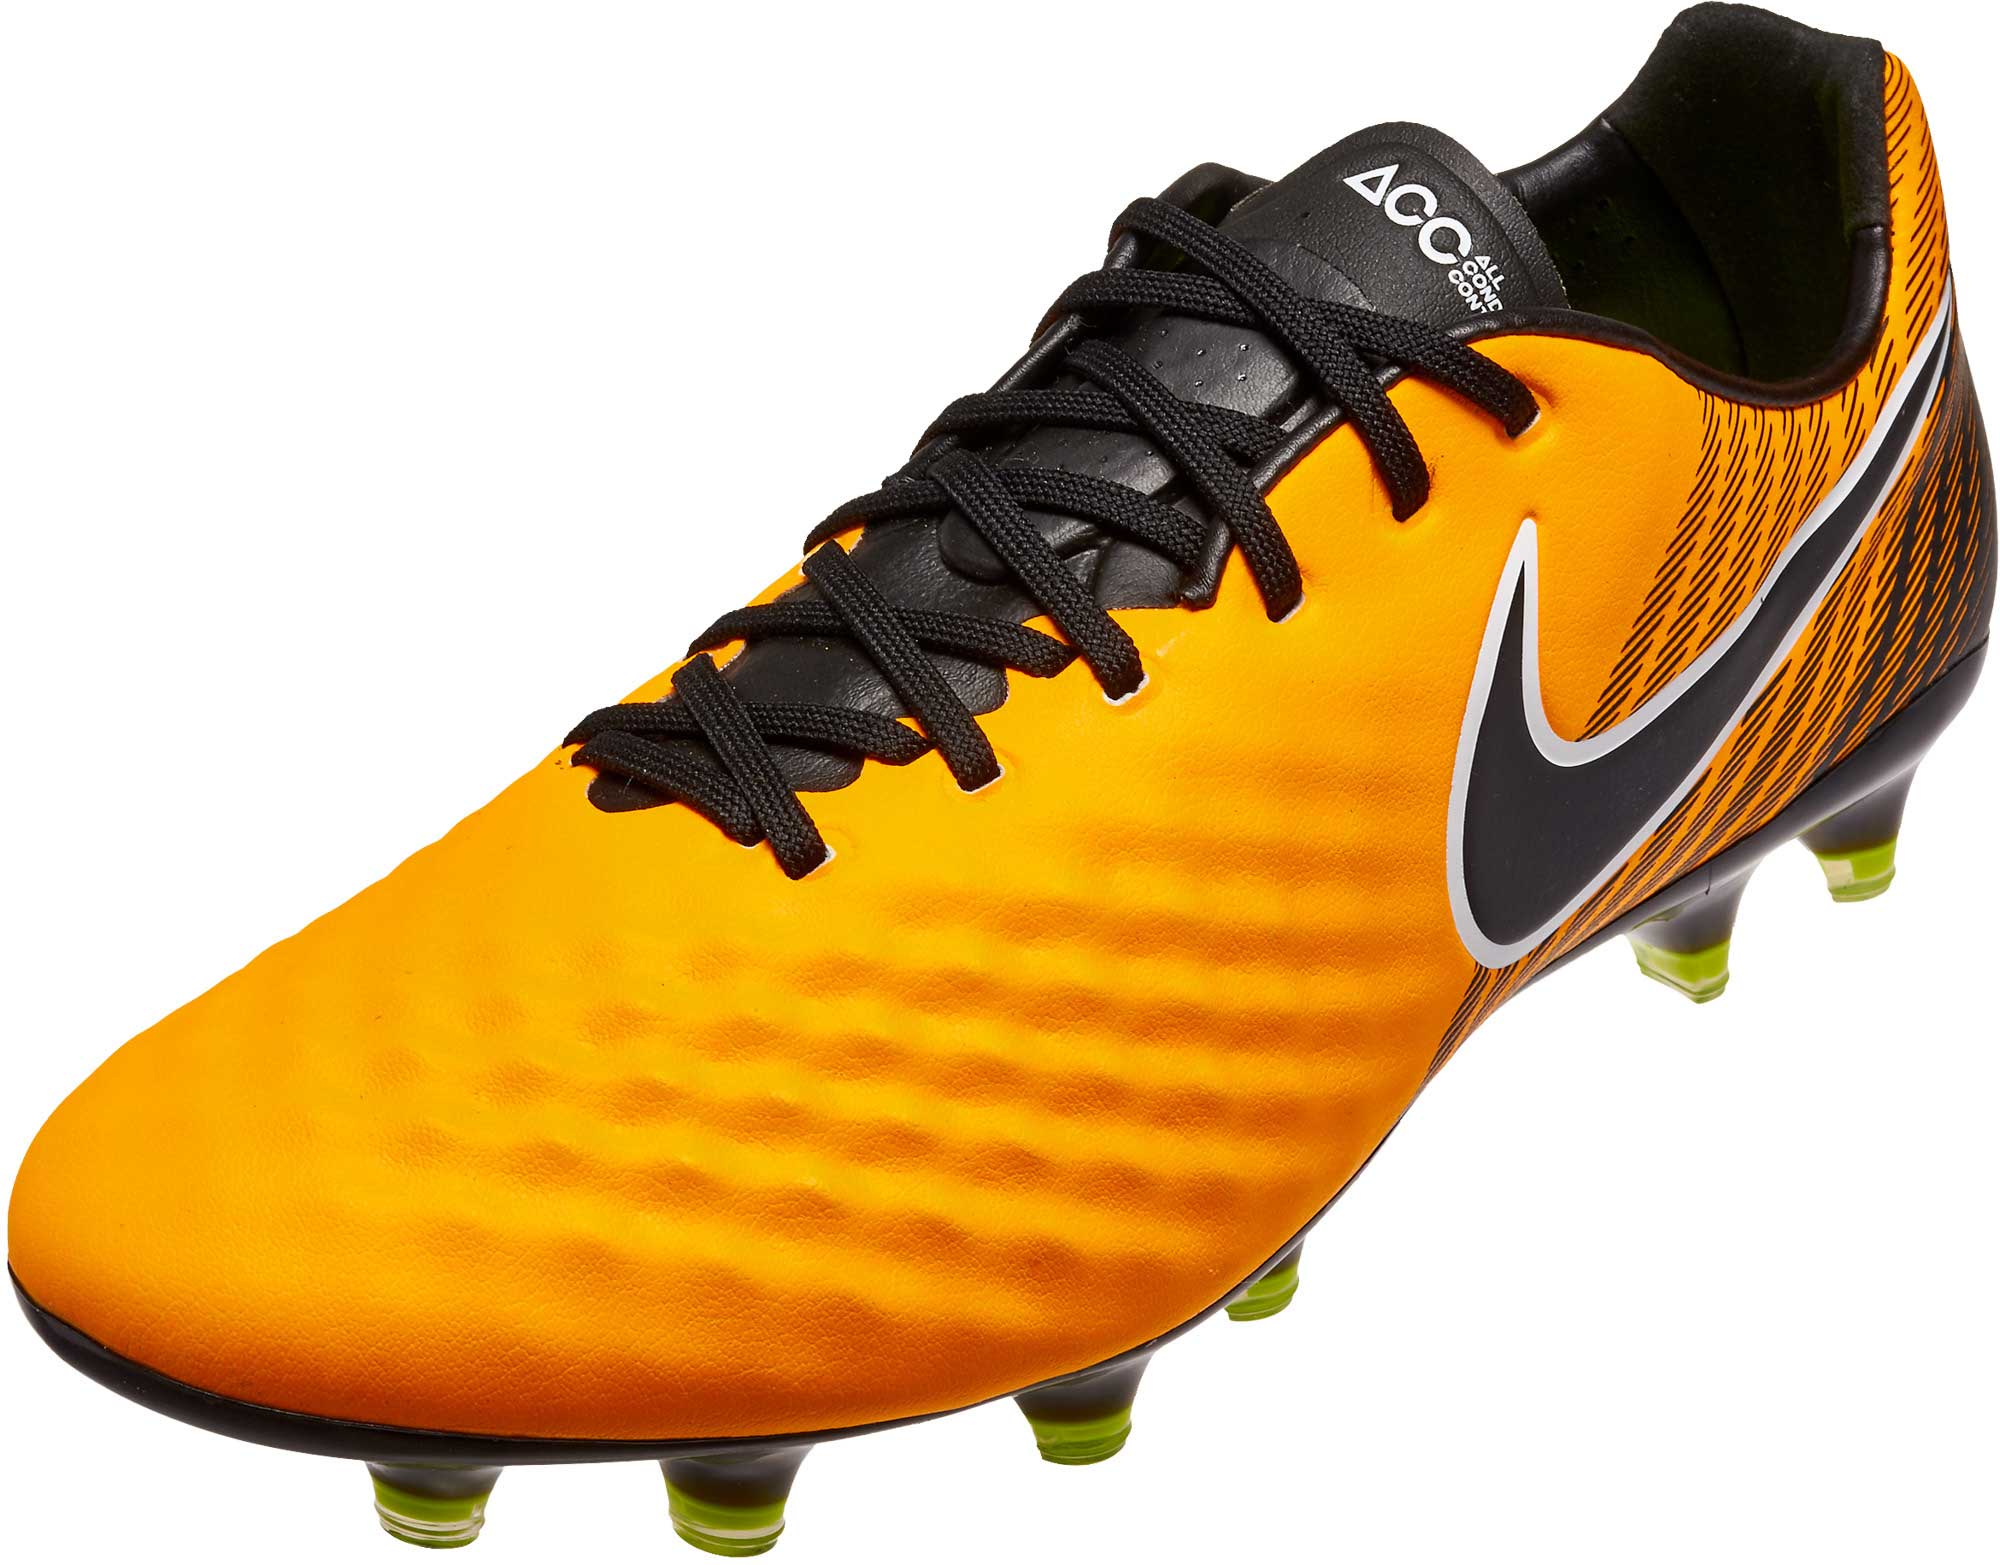 62c63bca6d0 Nike Magista Opus II FG – Laser Orange/Black